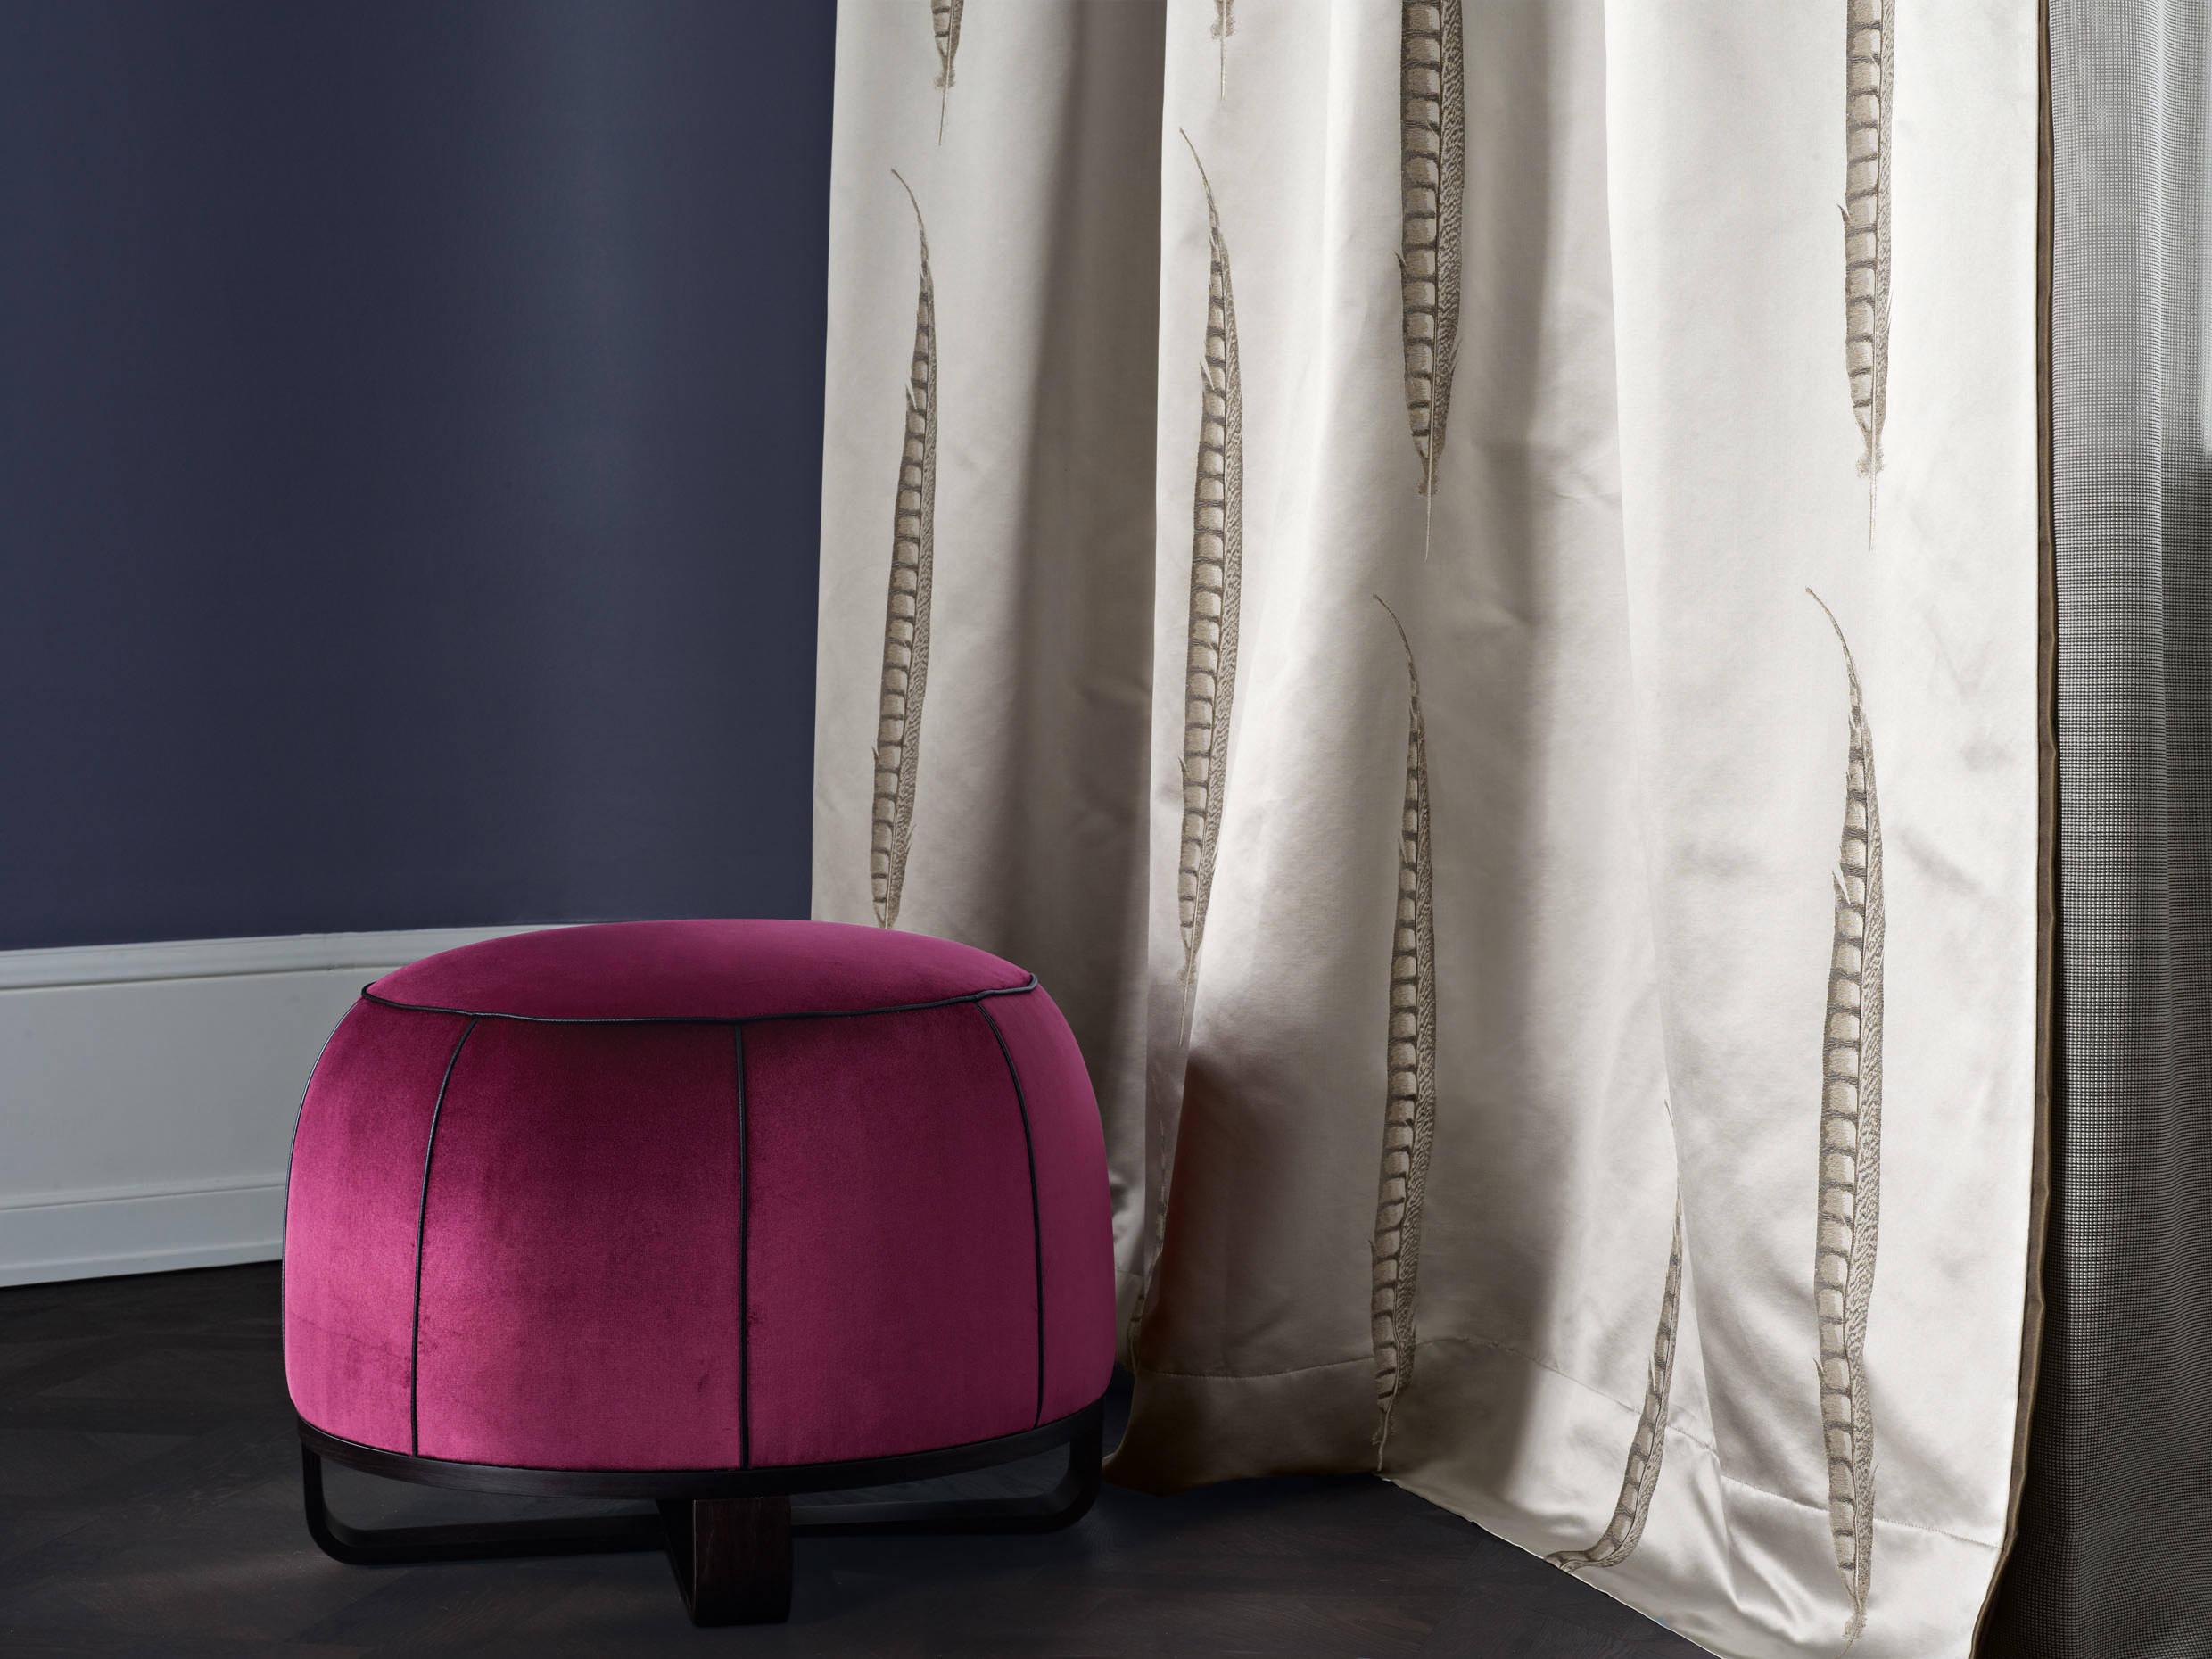 ball hocker poufs polsterhocker von zimmer rohde architonic. Black Bedroom Furniture Sets. Home Design Ideas